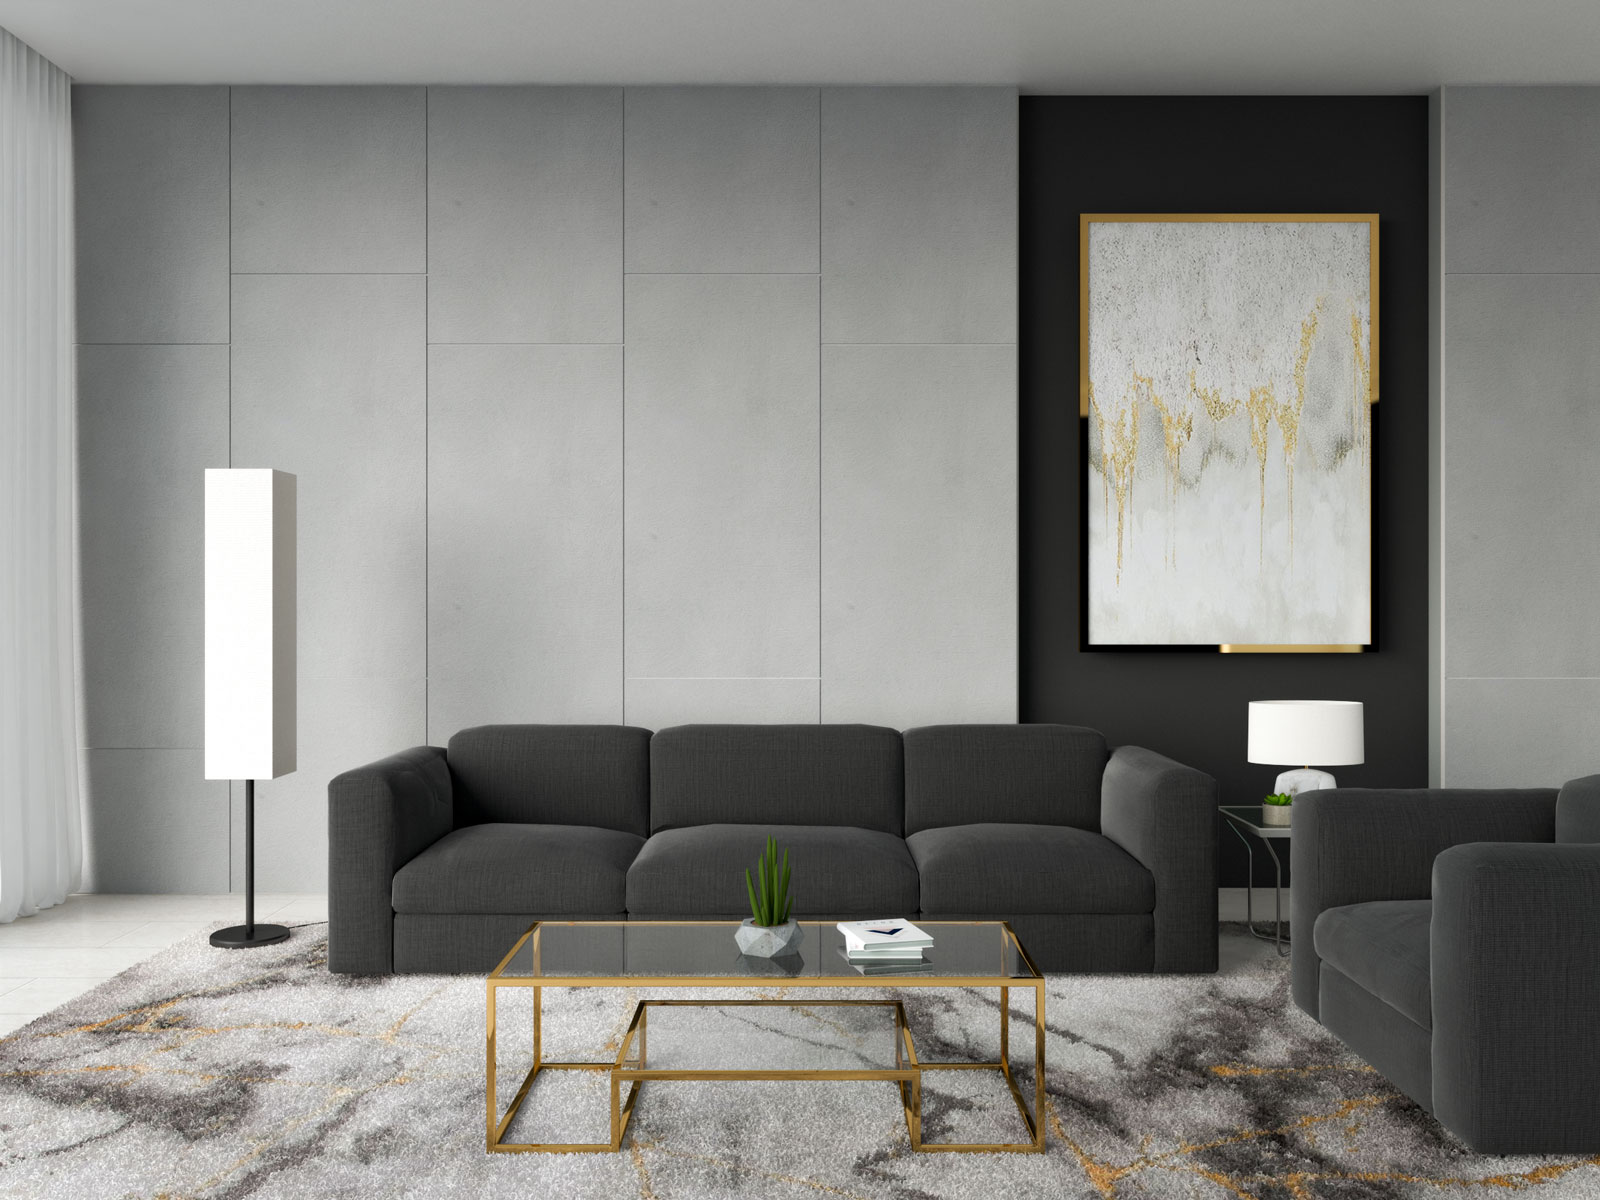 Gold coffee table with black sofa